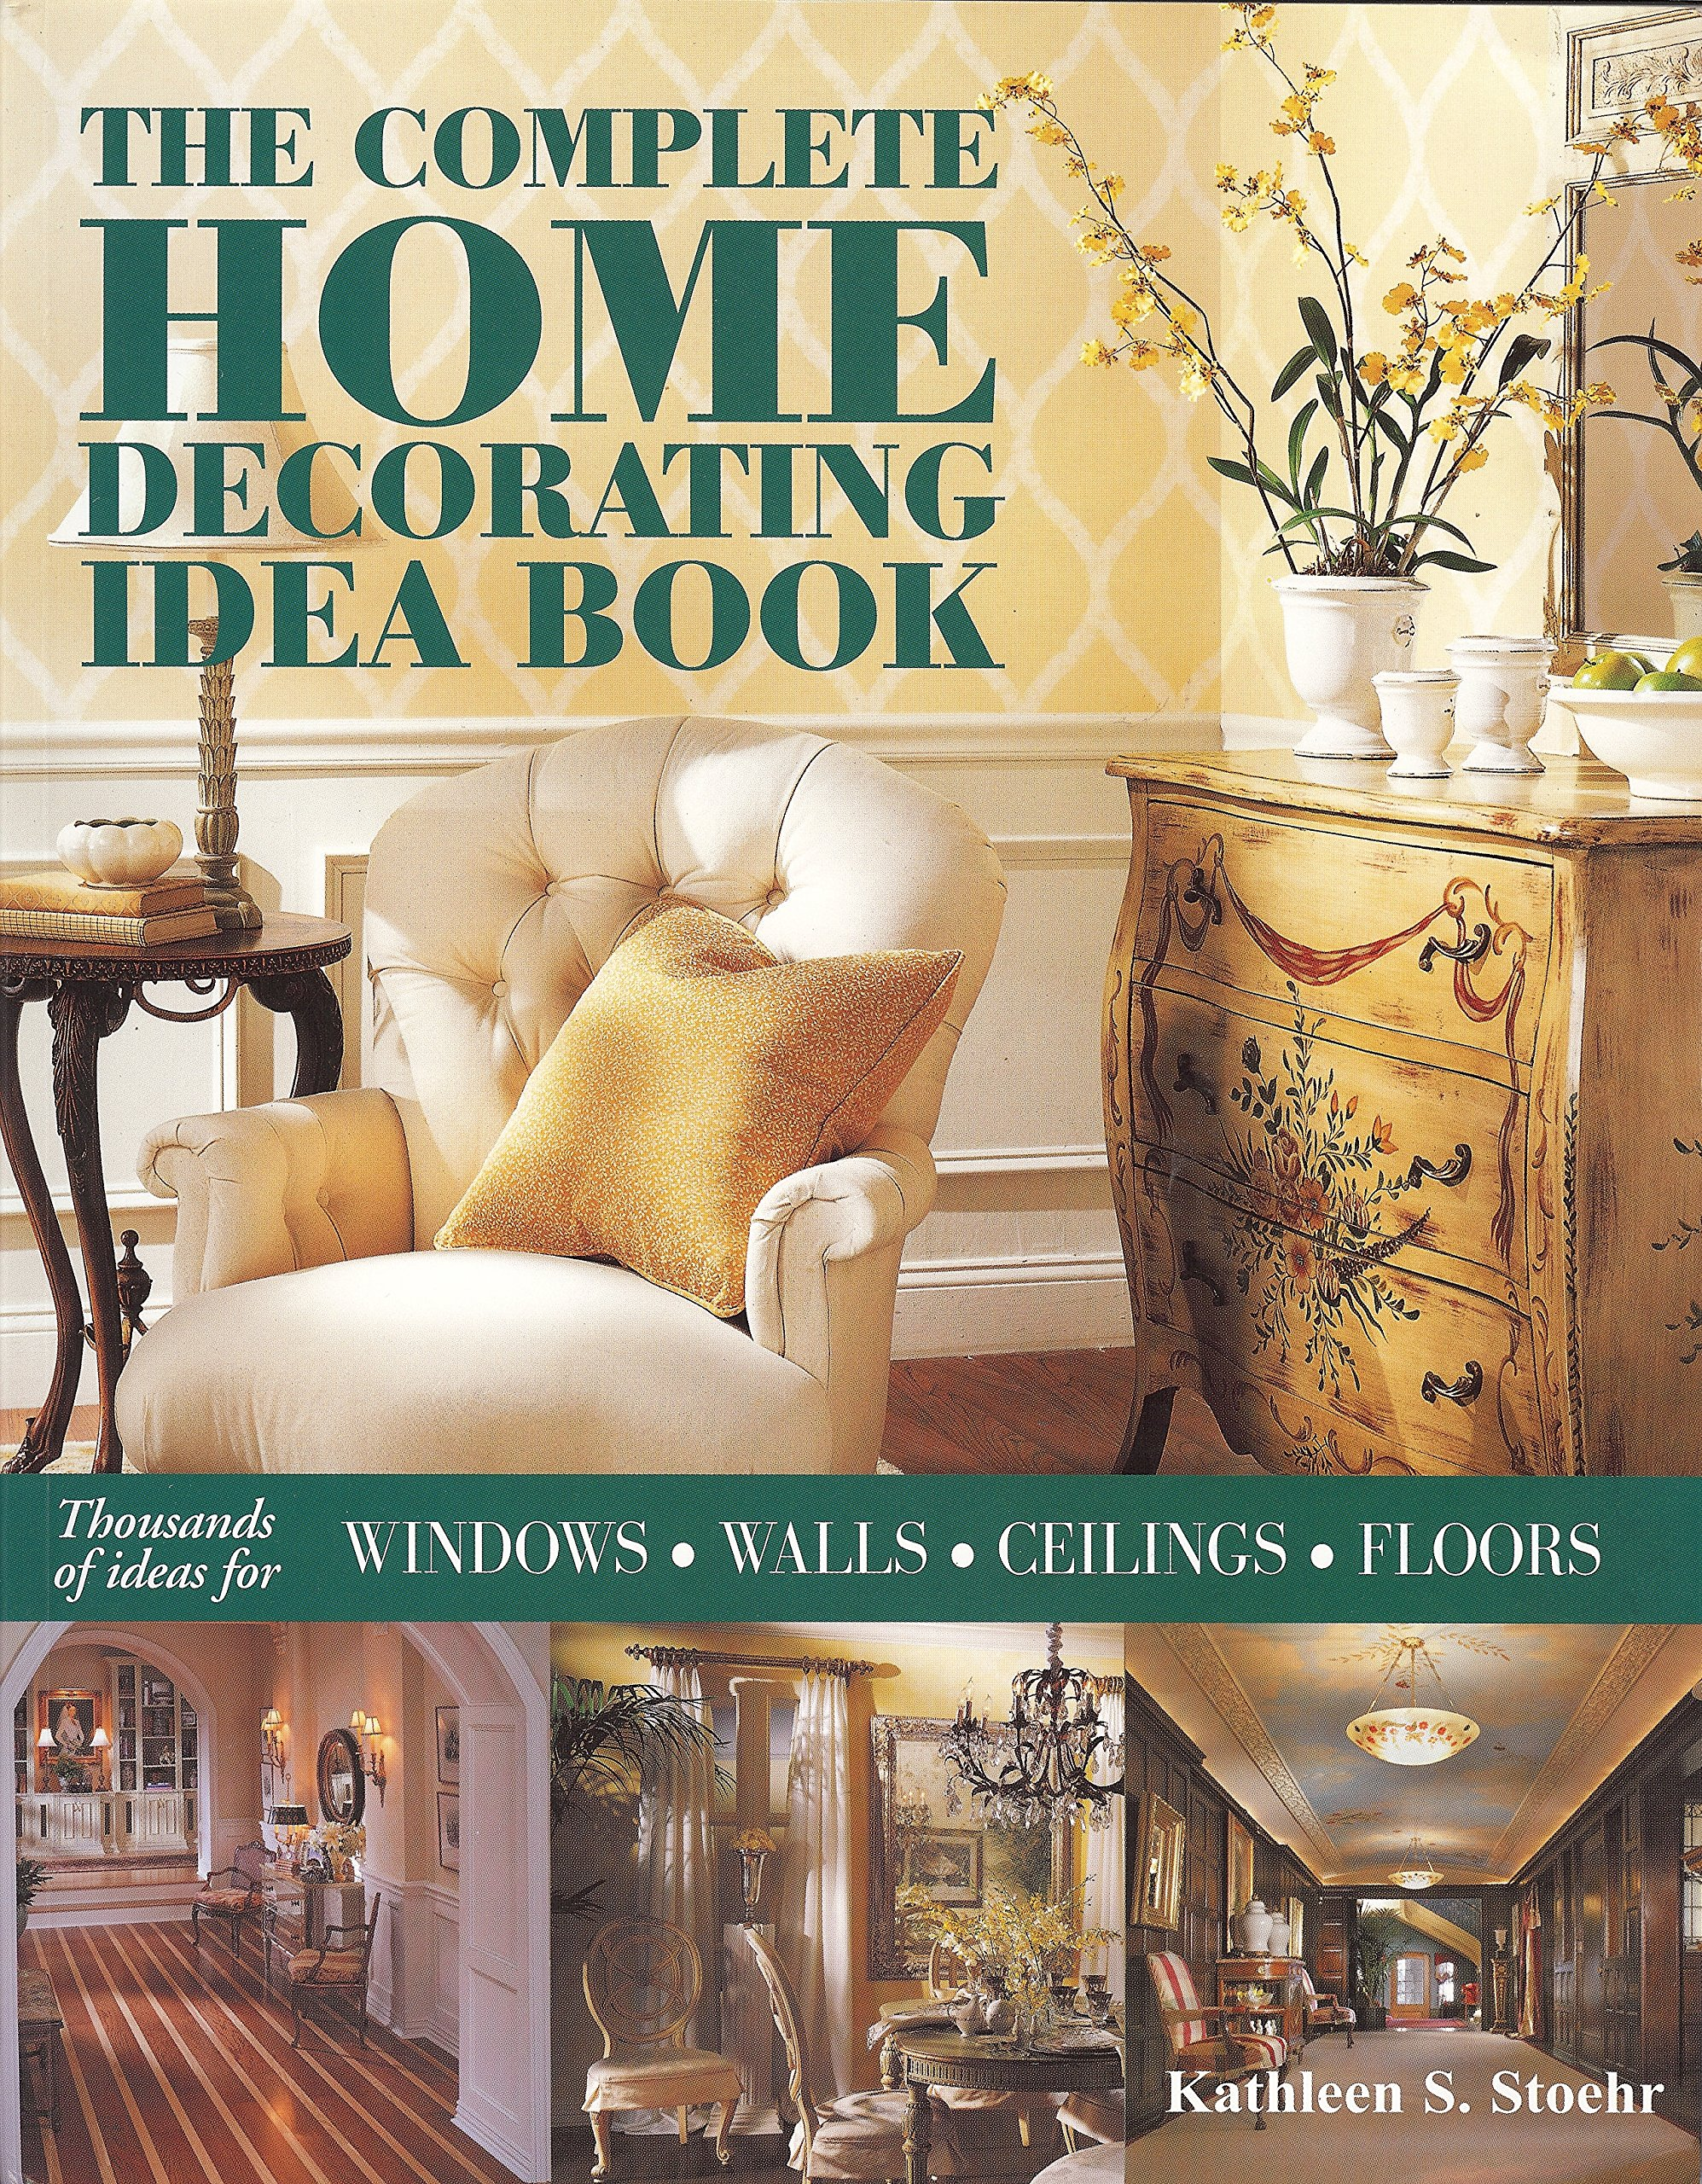 The Complete Home Decorating Idea Book Thousands Of Ideas For Windows Walls Ceilings And Floors Stoehr Kathleen 9781890379162 Amazon Com Books